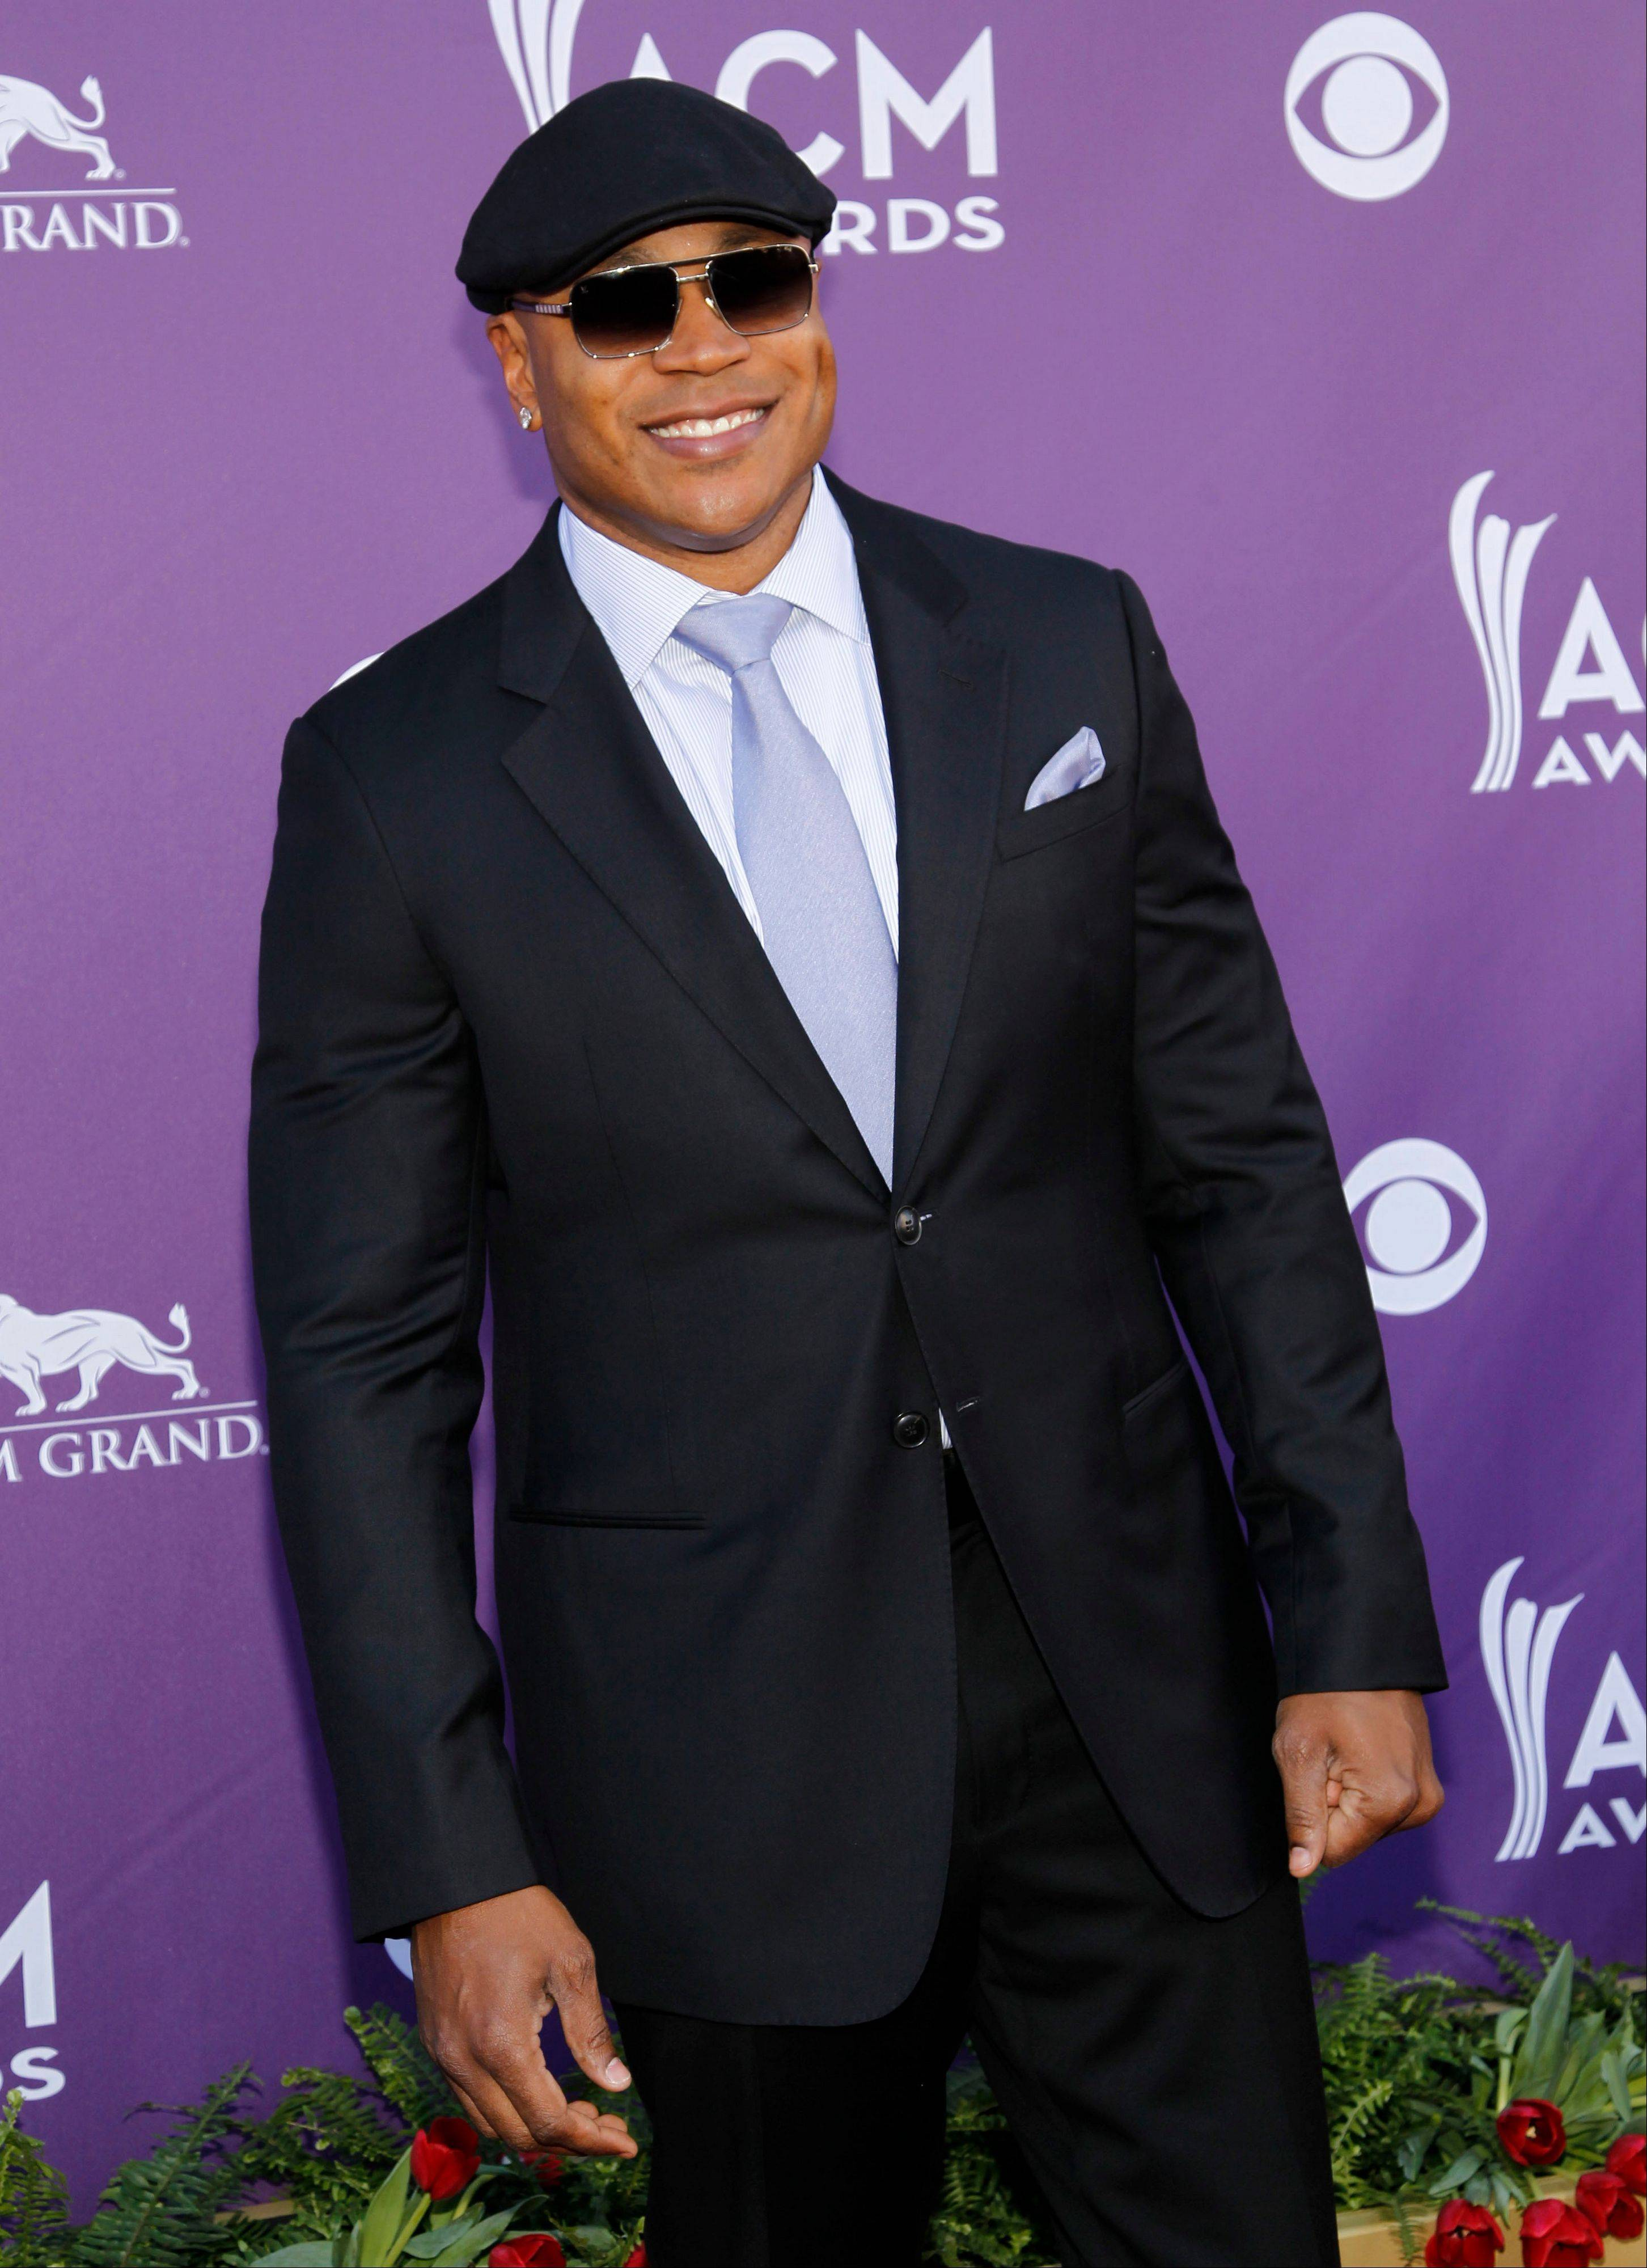 """NCIS: LA"" star LL Cool J trades in hosting duties for a seat in the audience for this awards show."